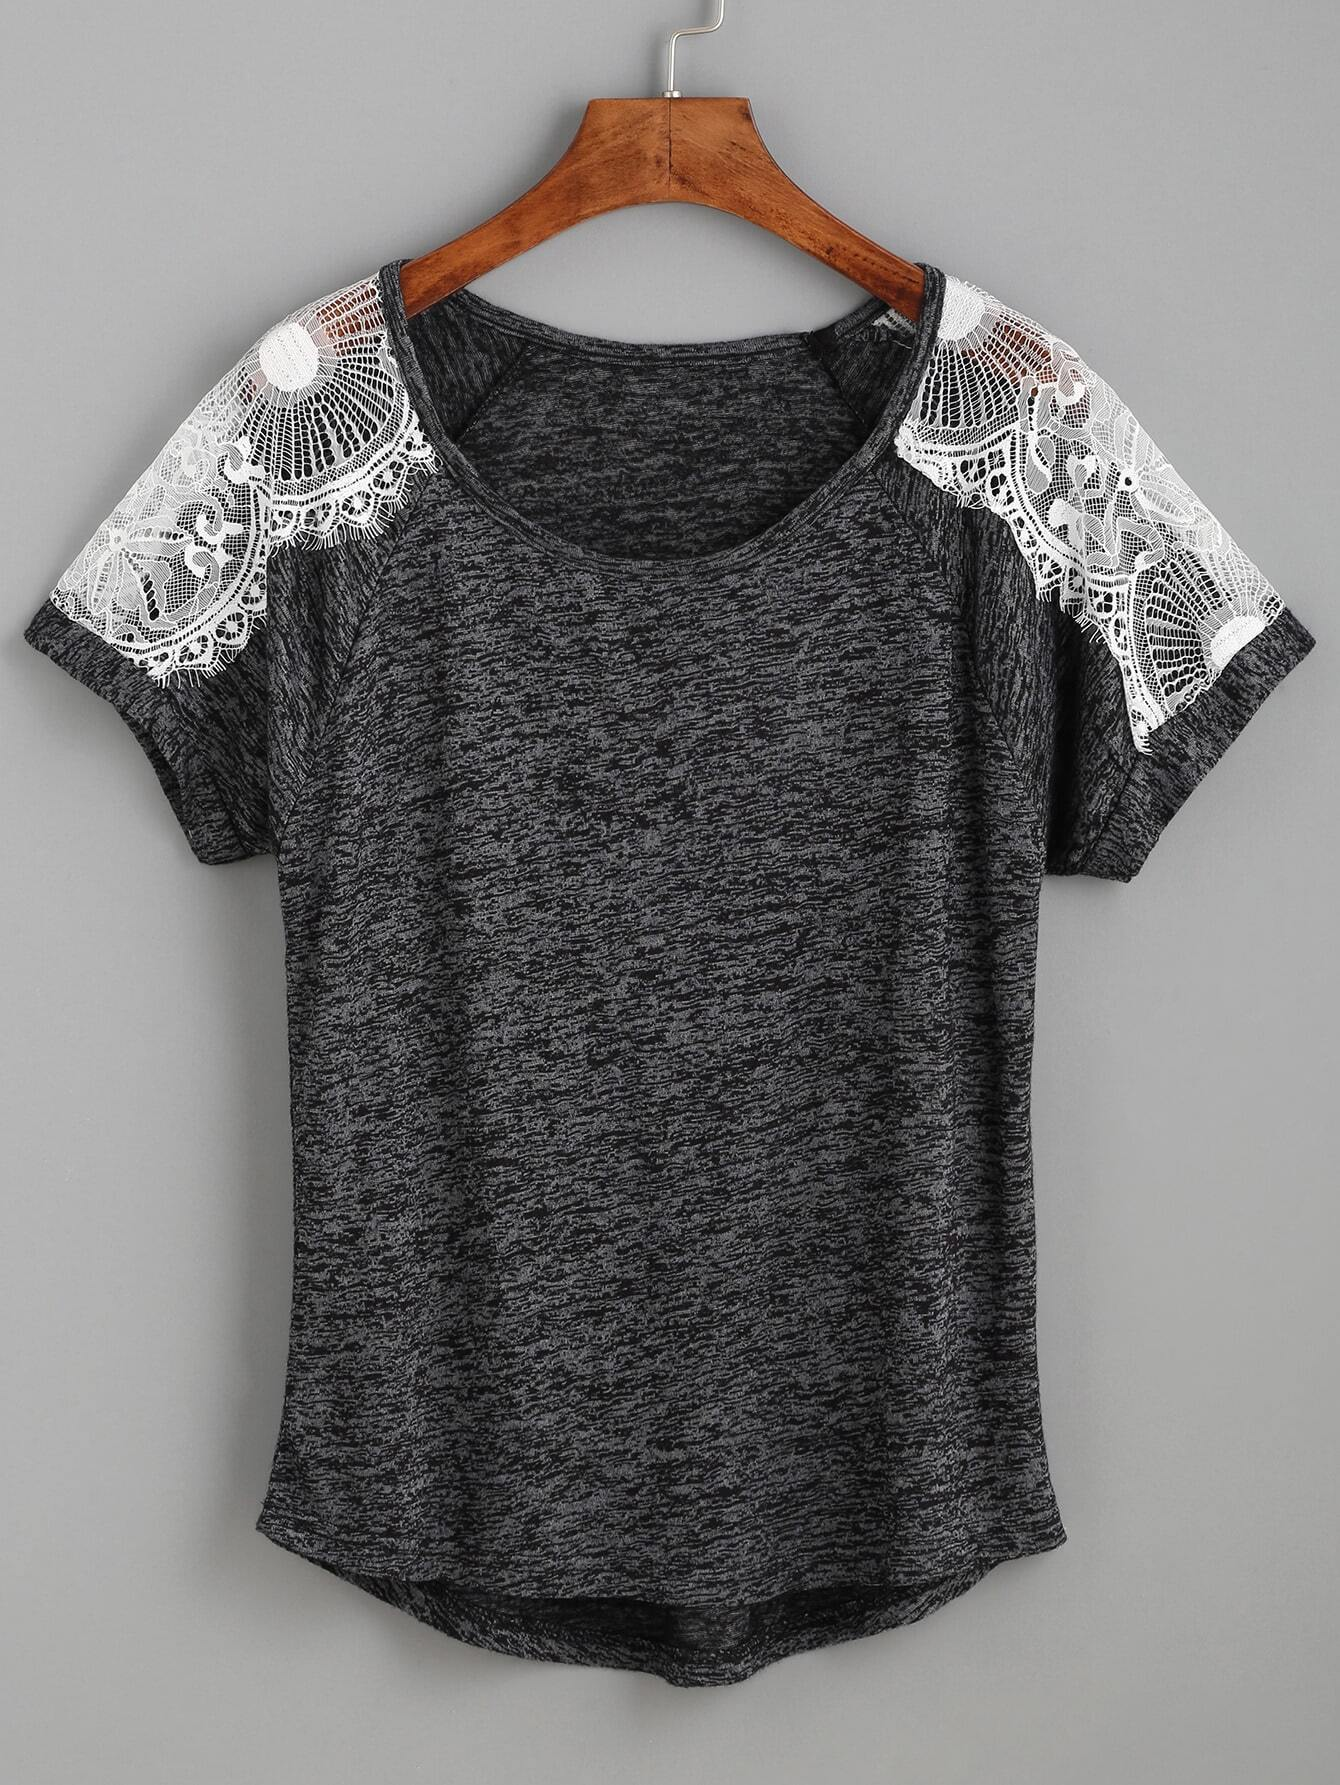 Heather Grey Contrast Lace Raglan Sleeve T-shirt рубашка insight shirt heather grey